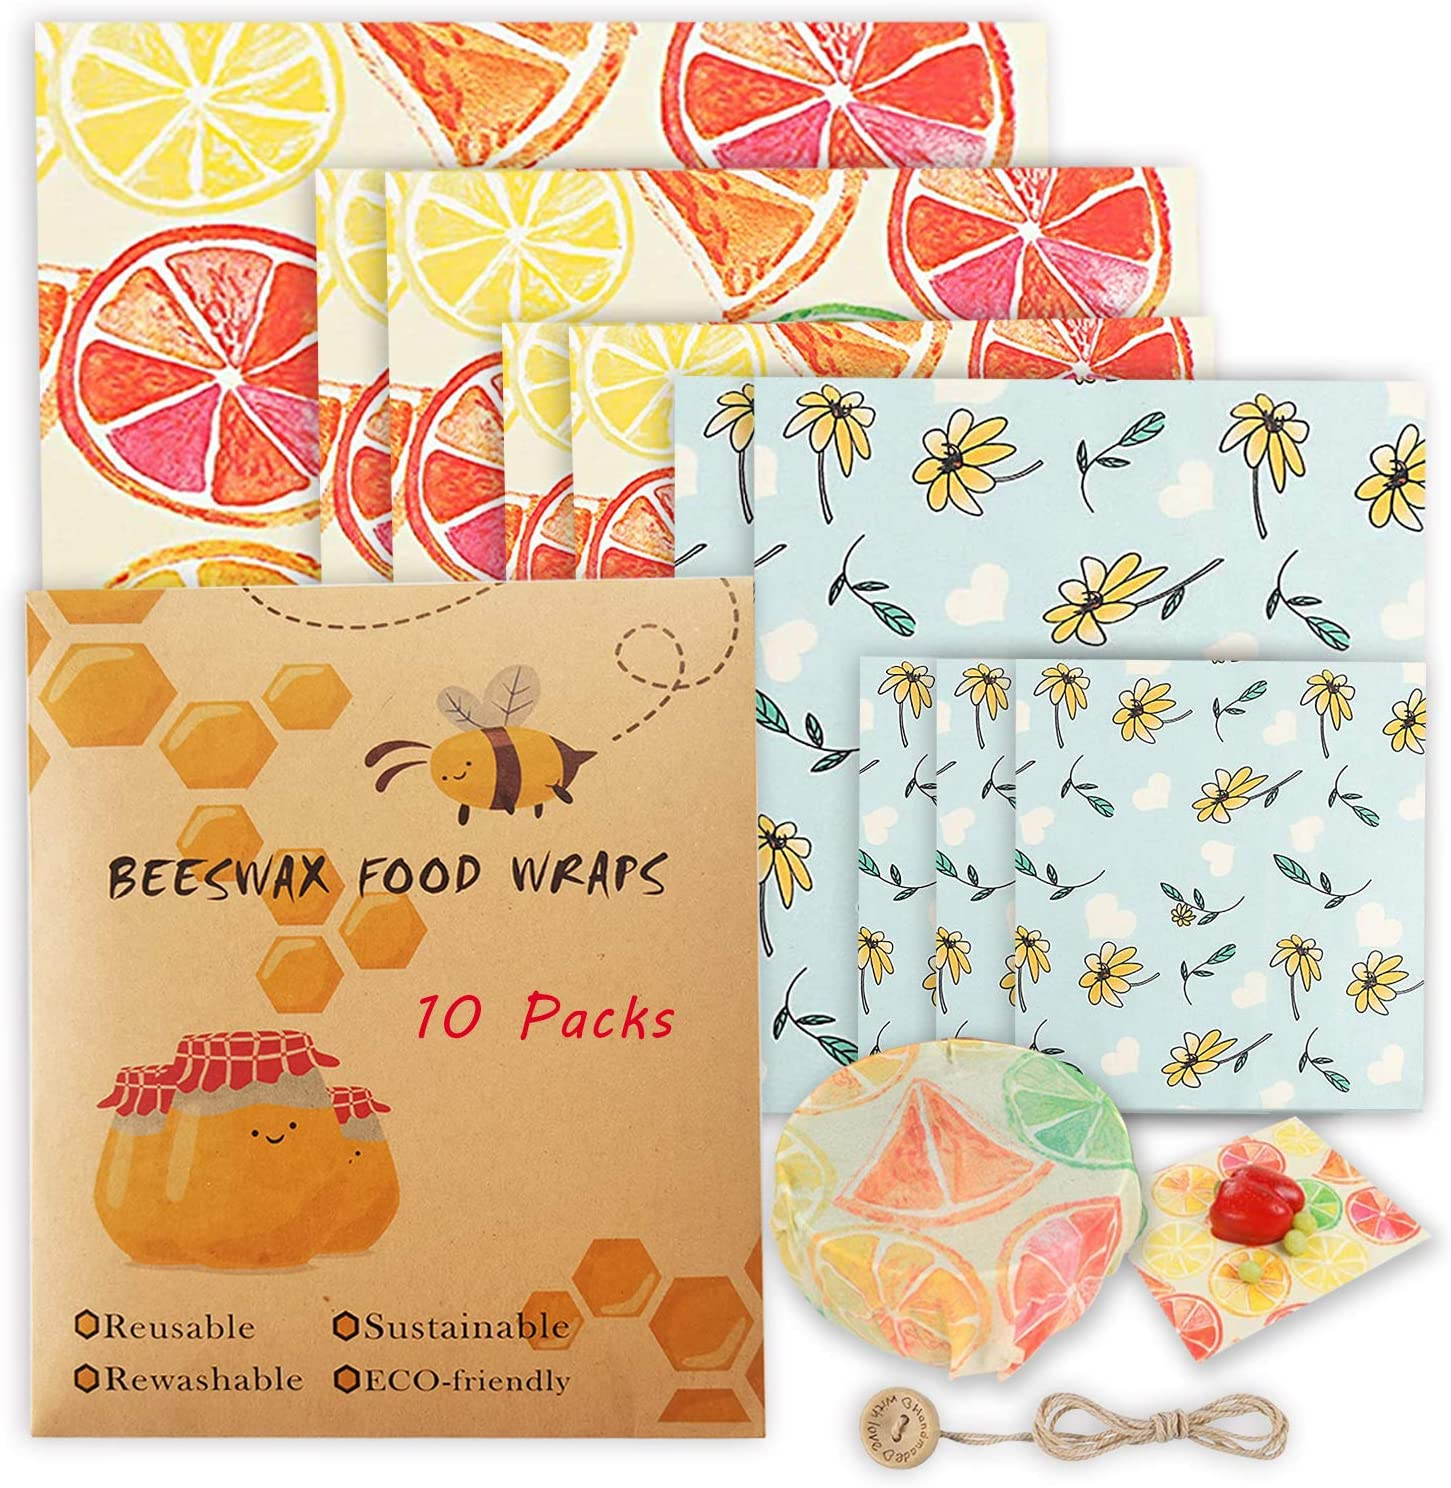 Beeswax Reusable Food Wraps 10 Packs Sustainable Organic Bees Wax Wrap Eco Friendly Plastic-Free for Food Storage, Zero Waste Sandwich Wrappers Bowl Covers (Lemon&Sunflower)